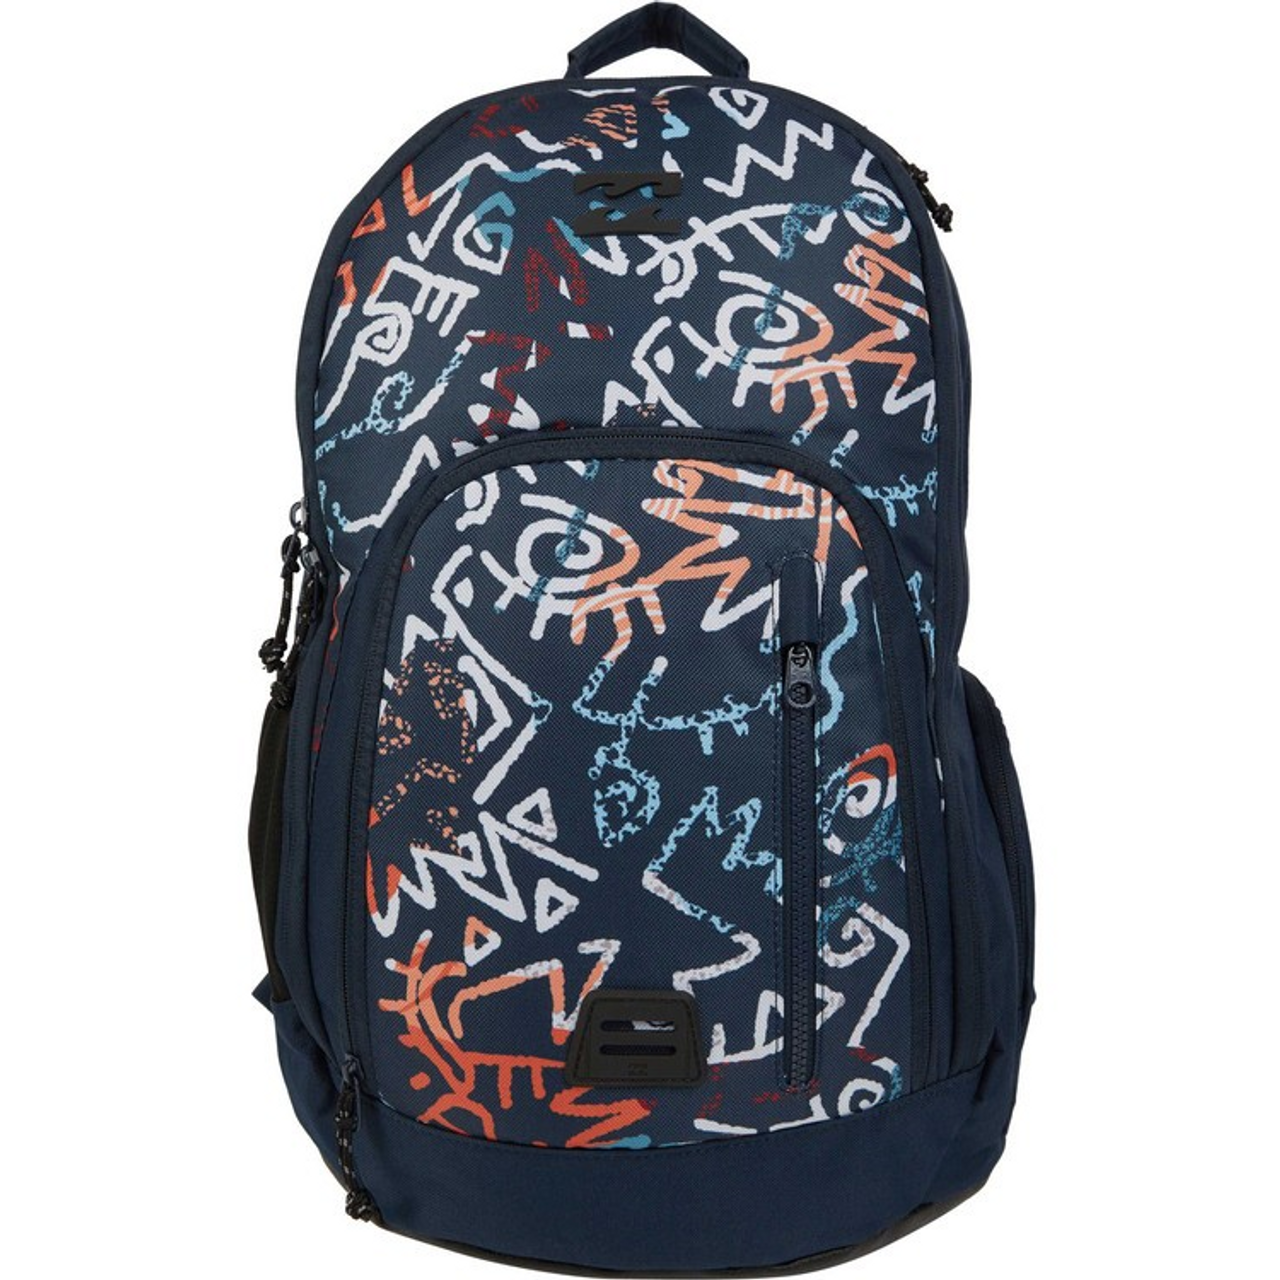 d2b89763e55 Billabong Backpack - Command Pack - Navy Coral - Surf and Dirt